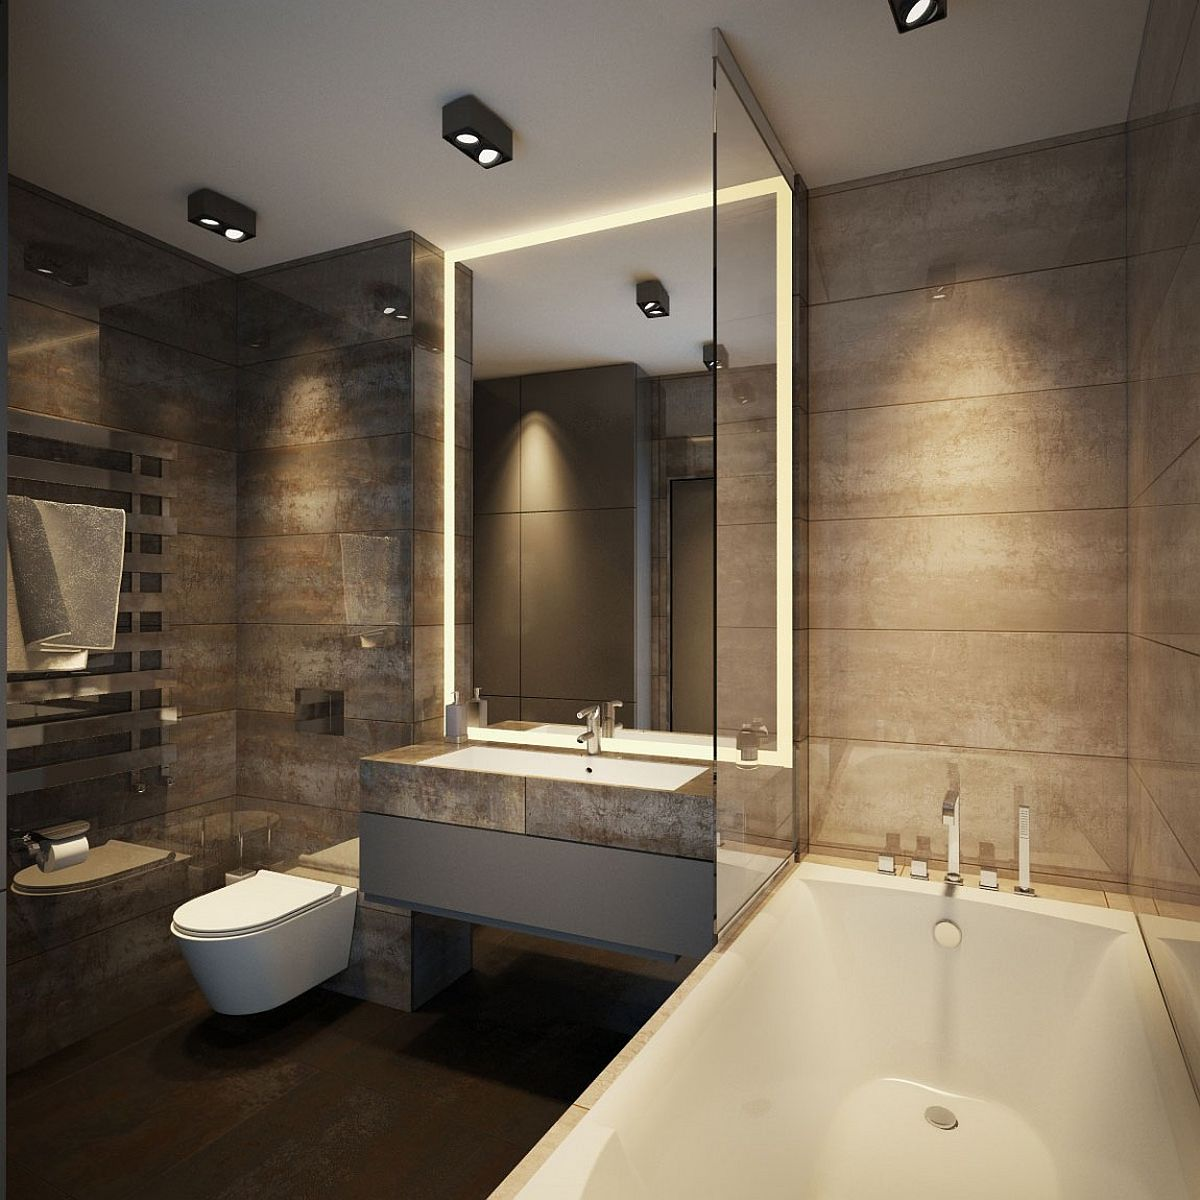 Apartment ernst in kiev inspired by posh hotel ambiance for Bathroom apartment ideas